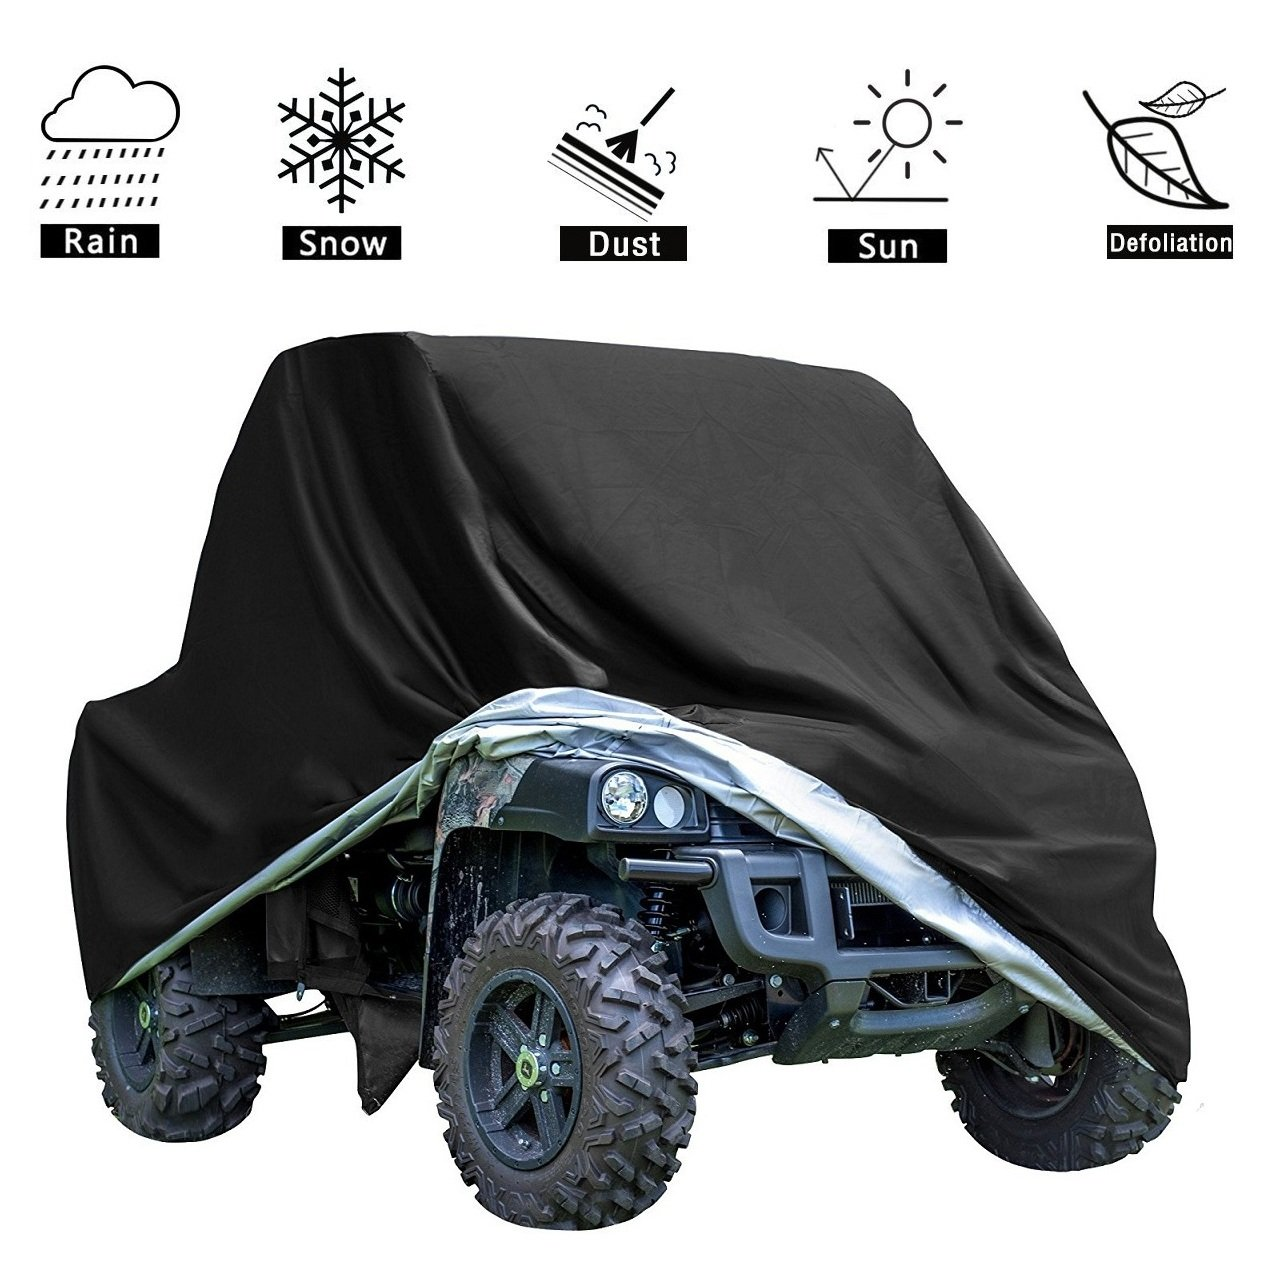 VVHOOY UTV Cover Waterproof All Weather,Heavy Duty Oxford Utility Vehicle Storage Cover for Polaris RZR Pioneer Yamaha Honda Kawasaki Rhino Ranger Mule and More (114.17 x 59.06 x 74.80inch) (Black)